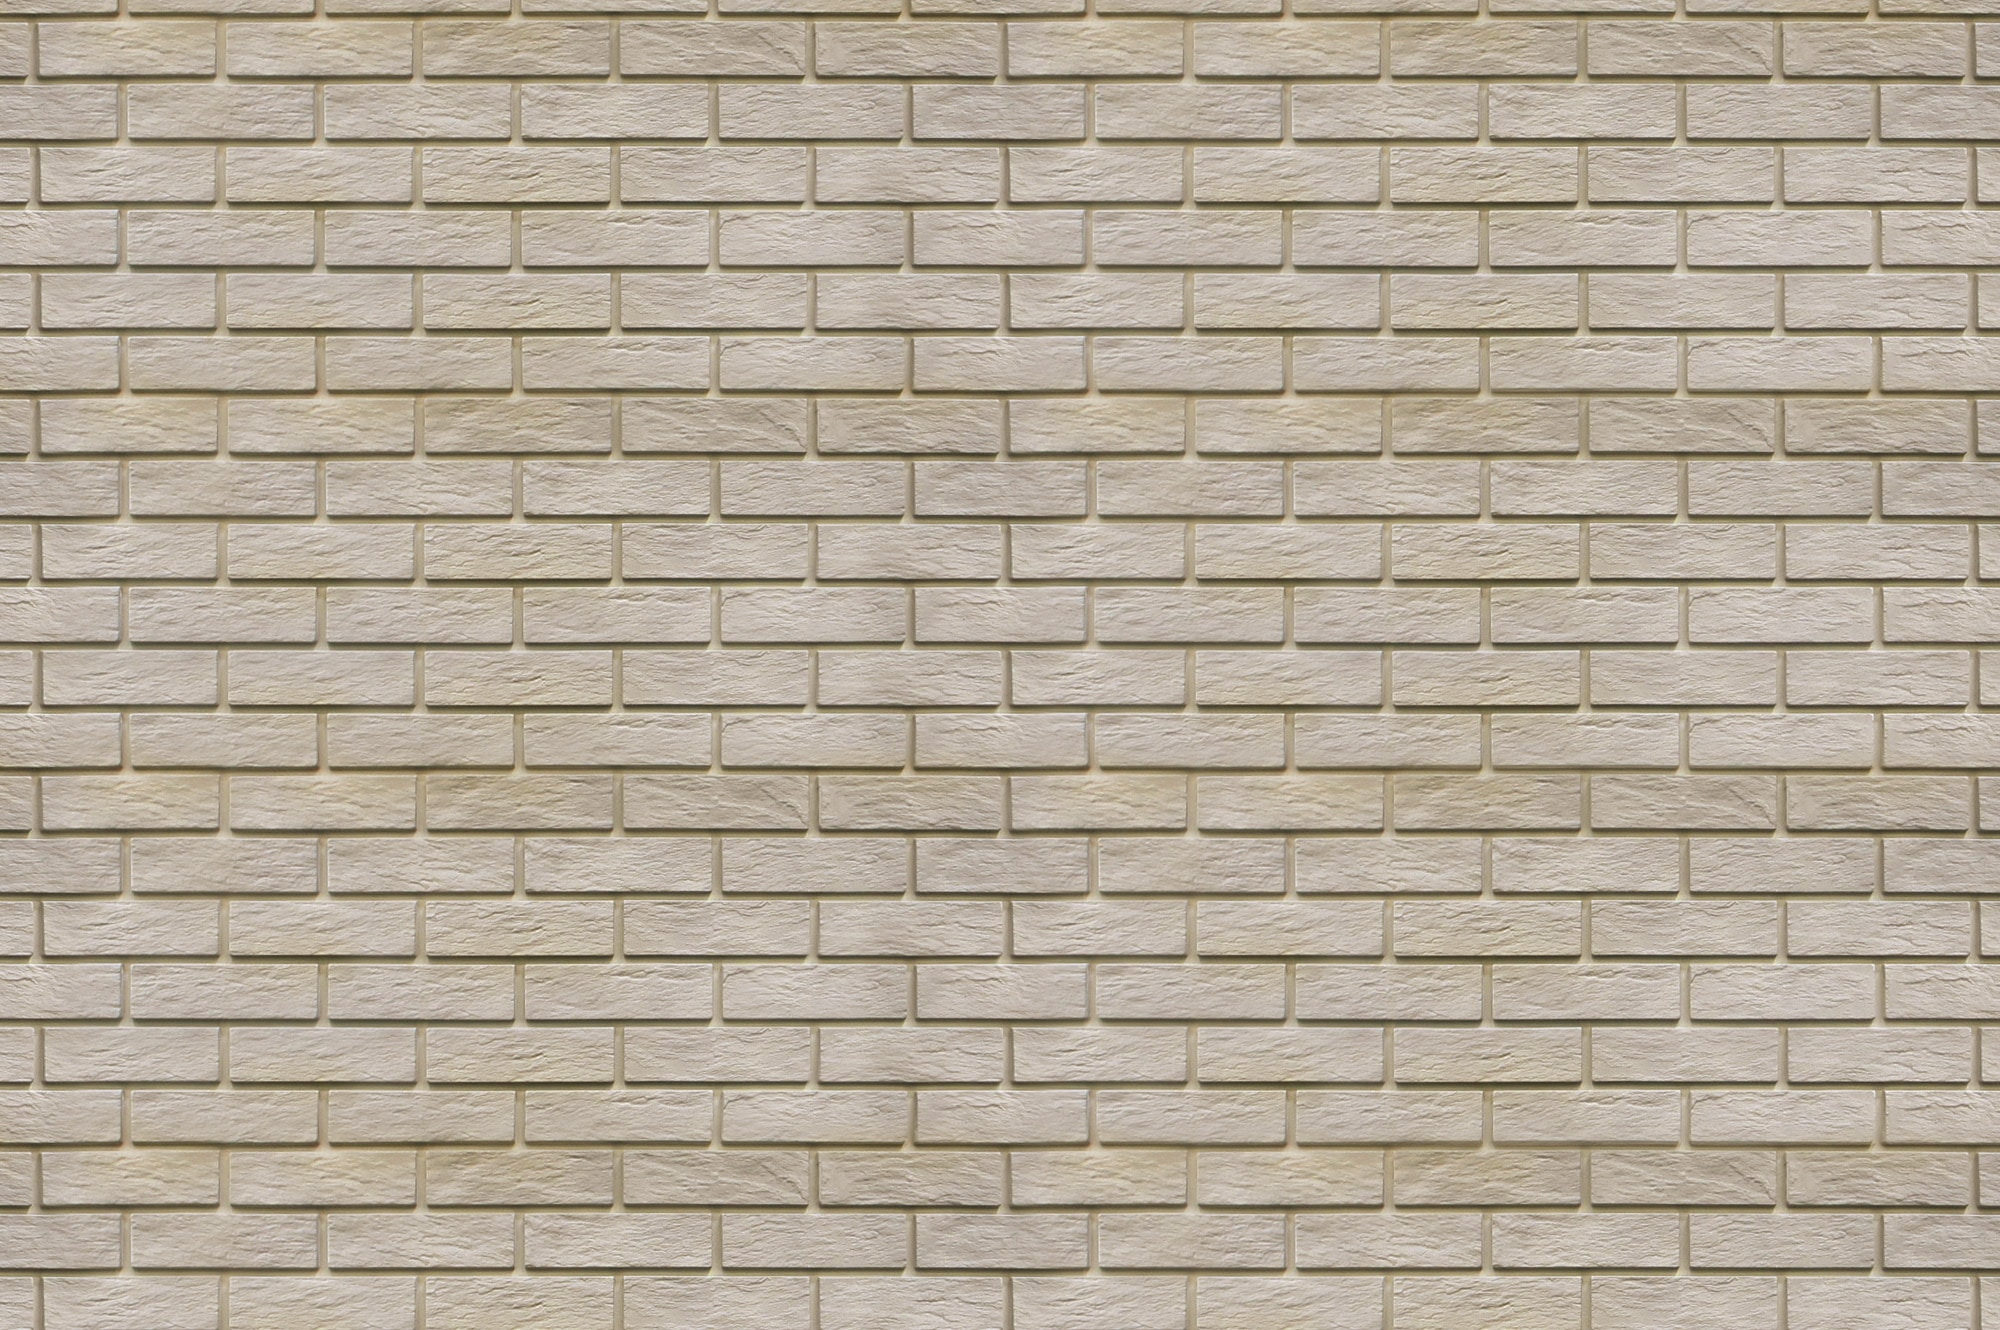 Strongside Brick Siding Faux Brick Panels Mixed Gray